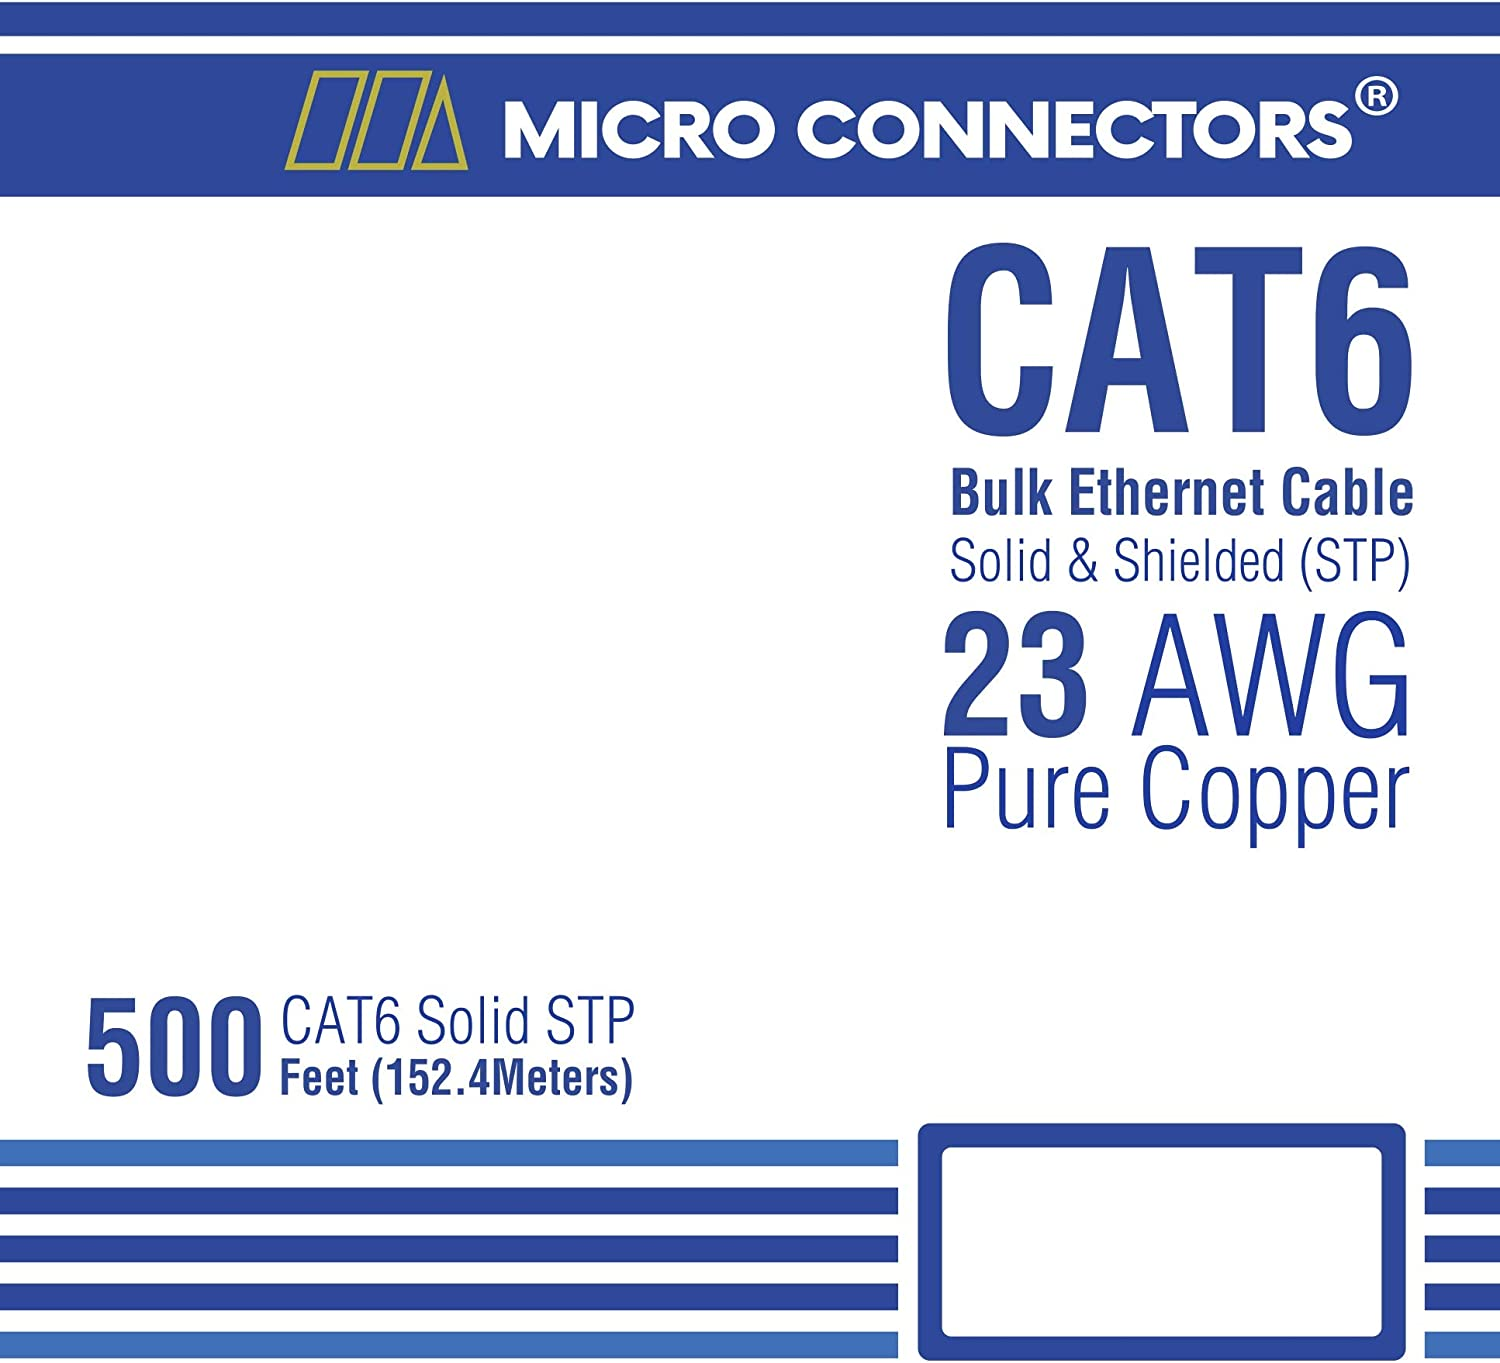 STP Gray Cat6 Bulk Ethernet Cable Micro Connectors 500ft Solid Shielded TR4-560SHGR-500